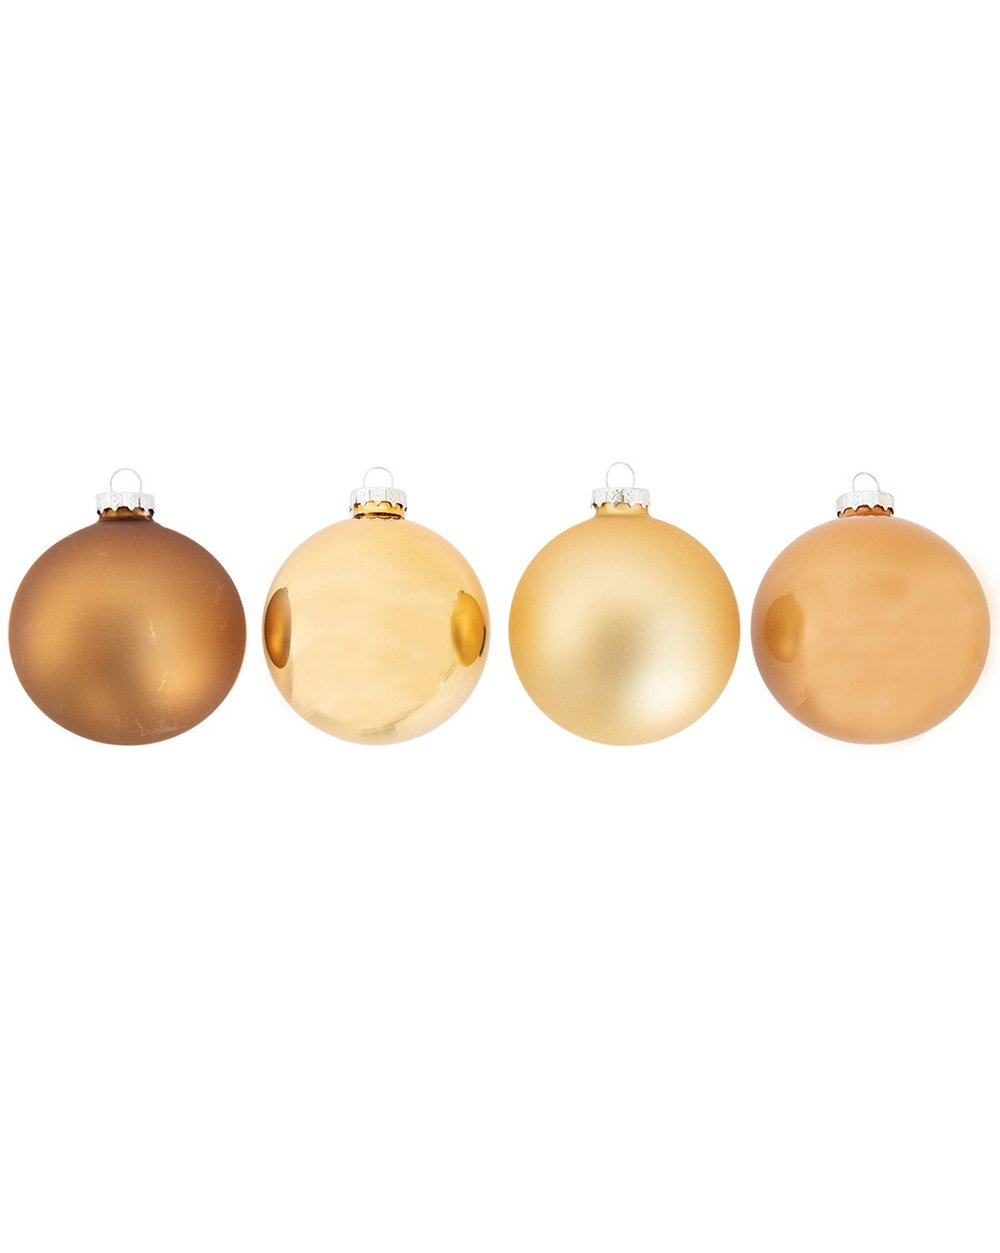 Shades_of_Gold_Ornaments_1.jpg